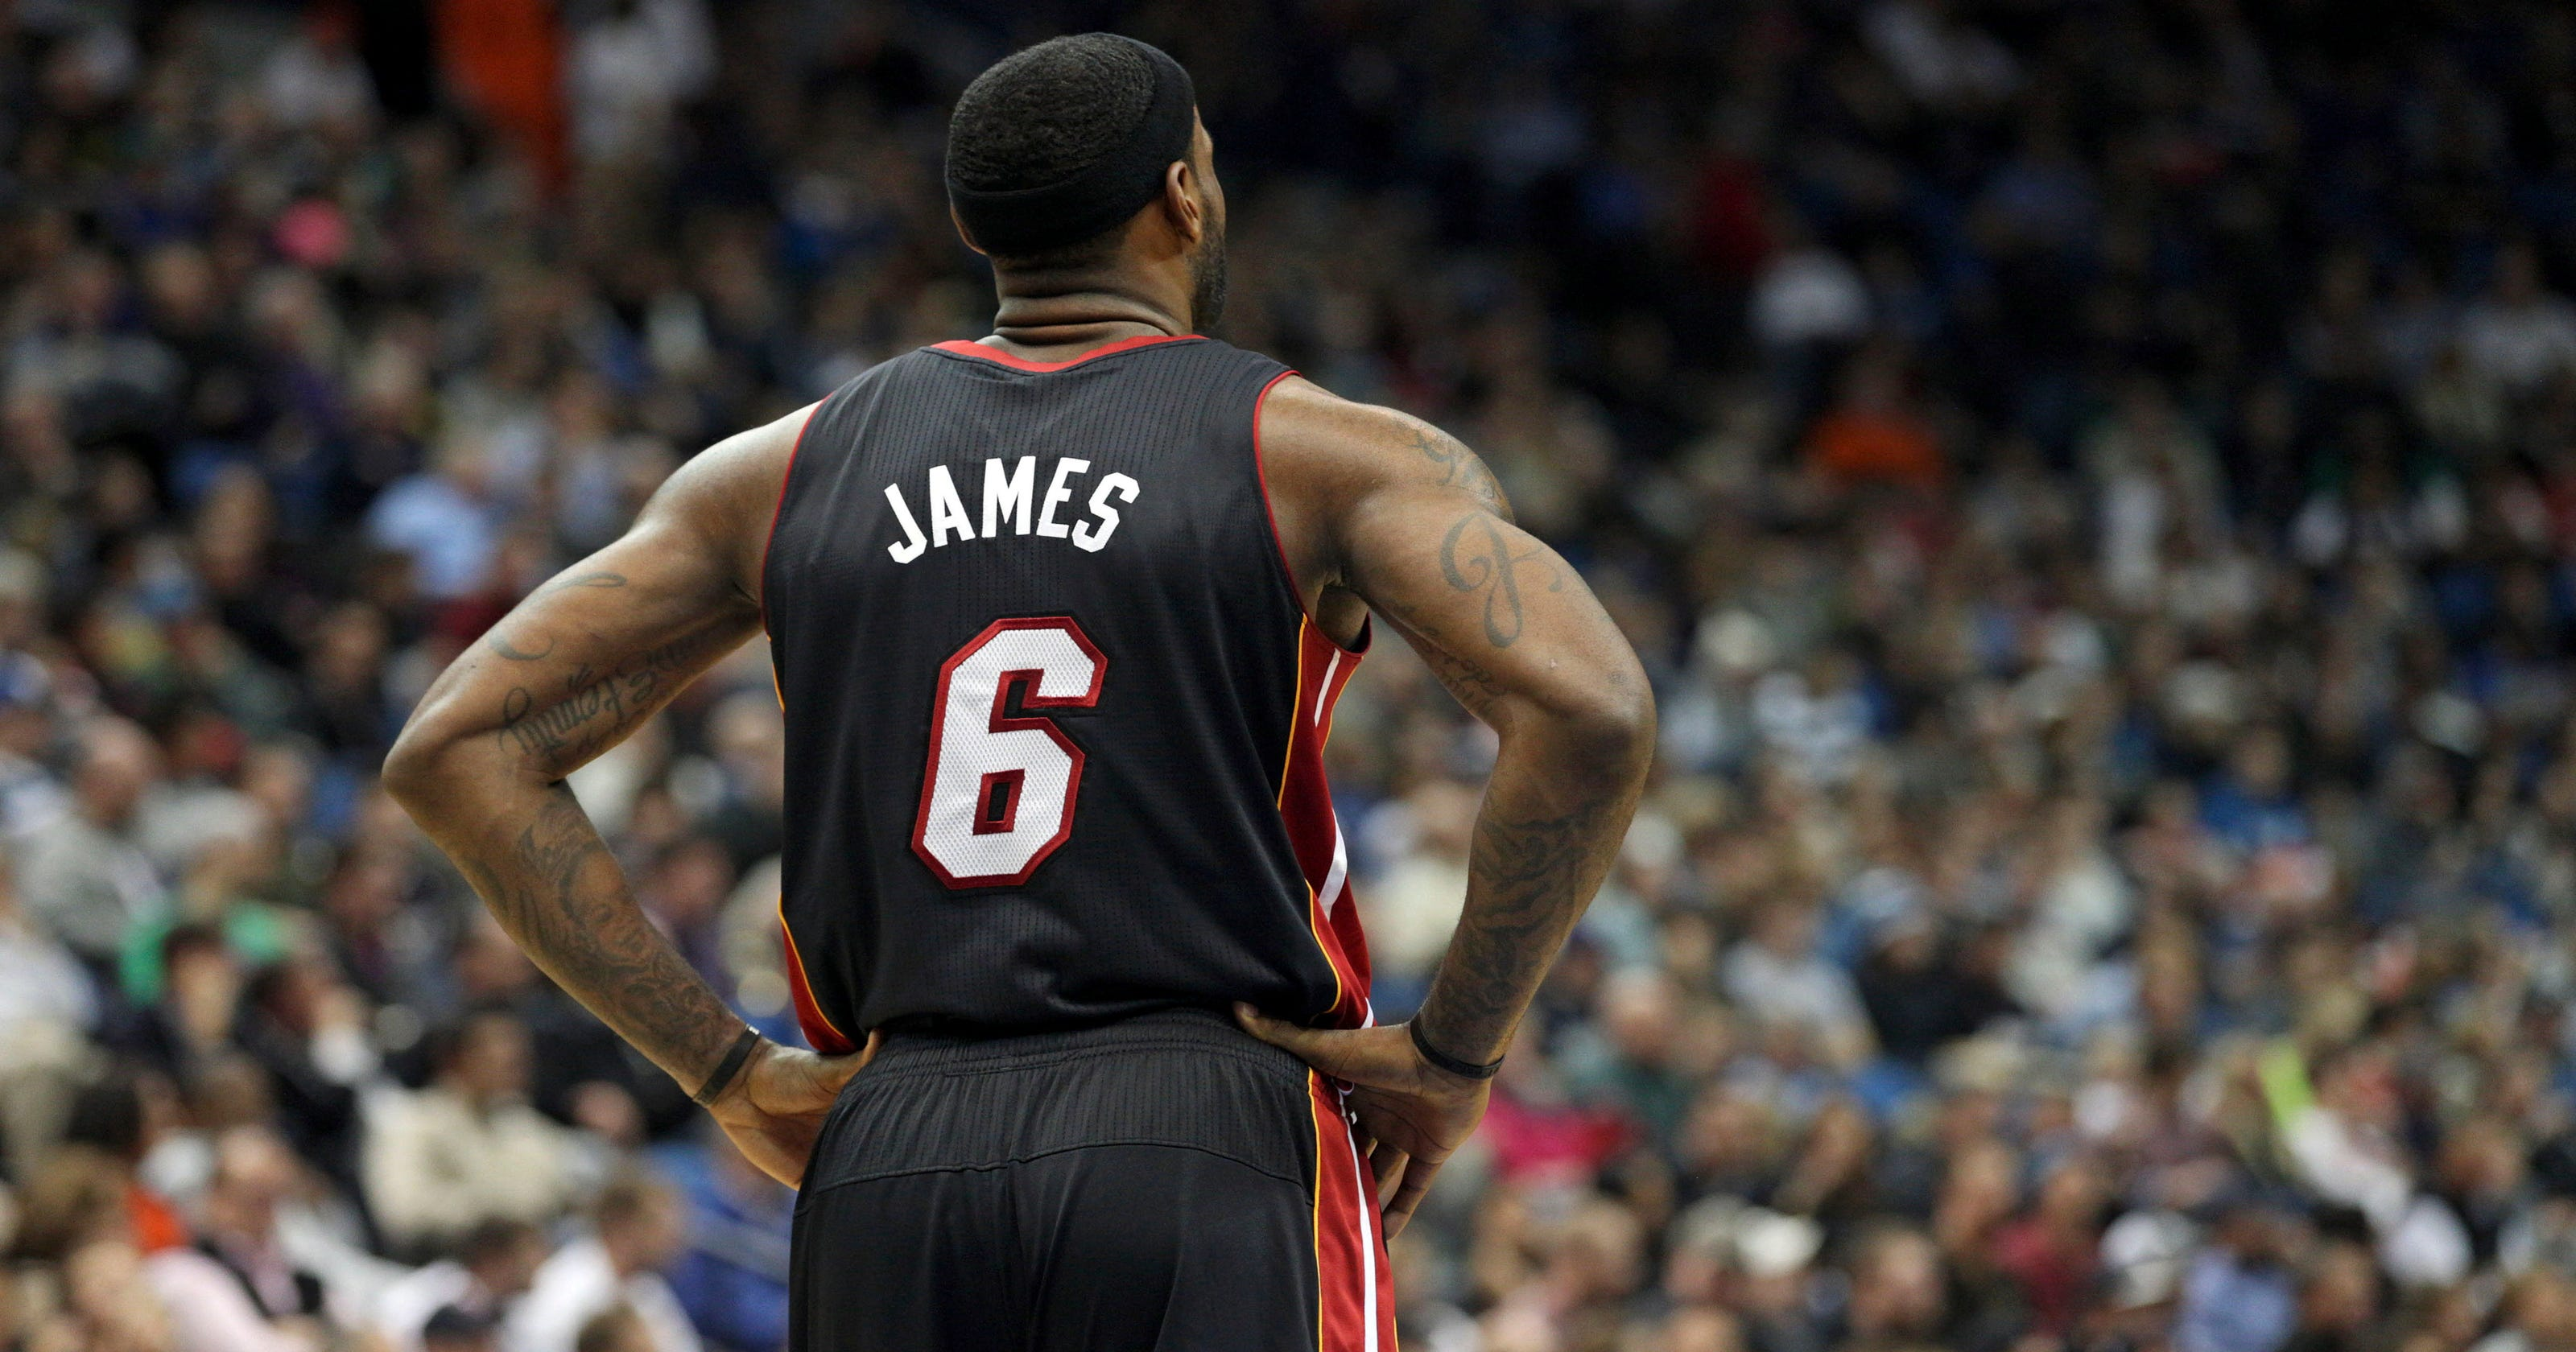 c1e0e8d6a01 LeBron James leads NBA jersey sales; Kobe Bryant next